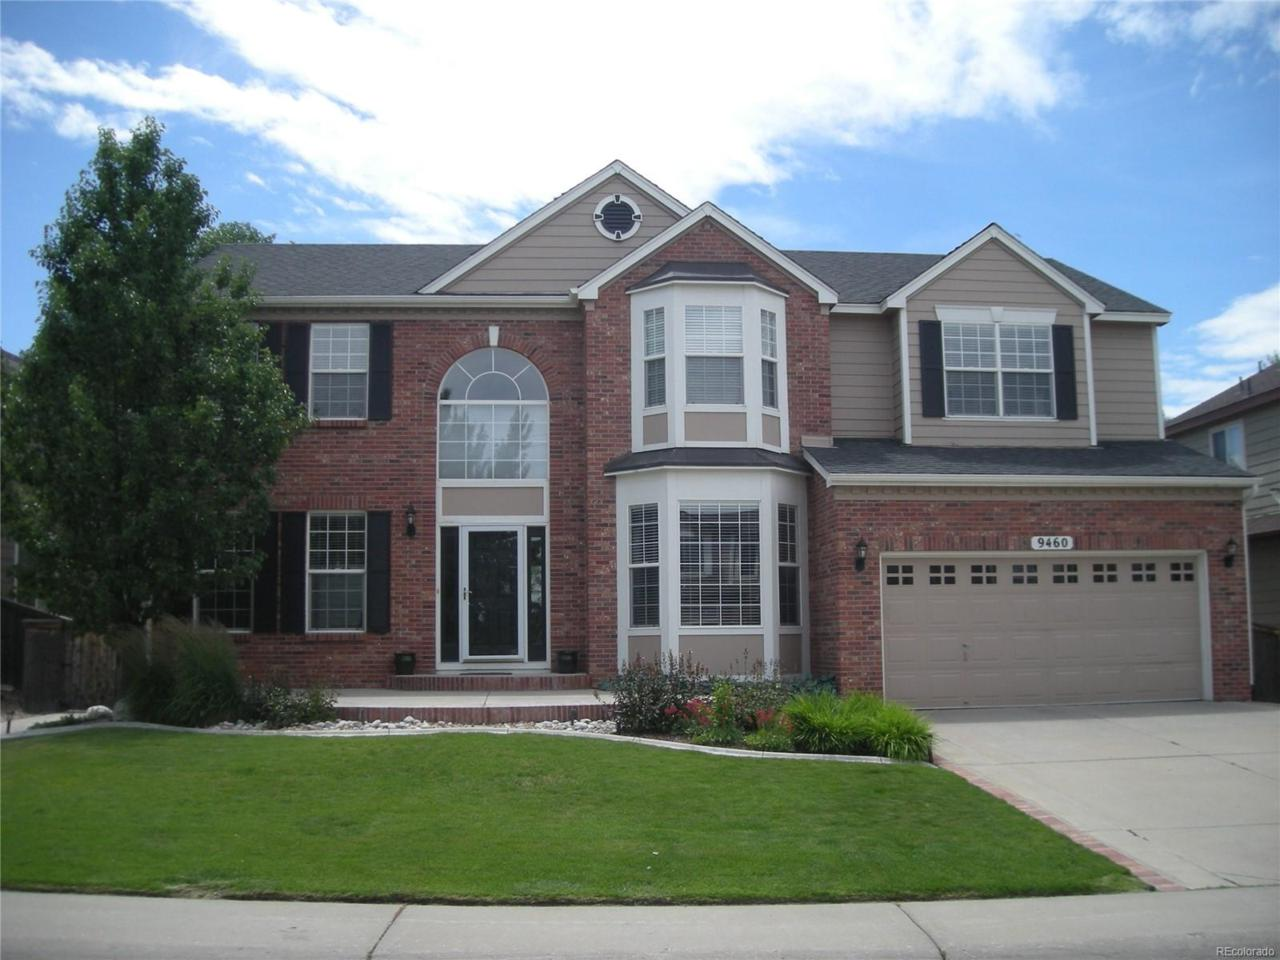 9460 Painted Canyon Circle, Highlands Ranch, CO 80129 (MLS #6346350) :: 8z Real Estate